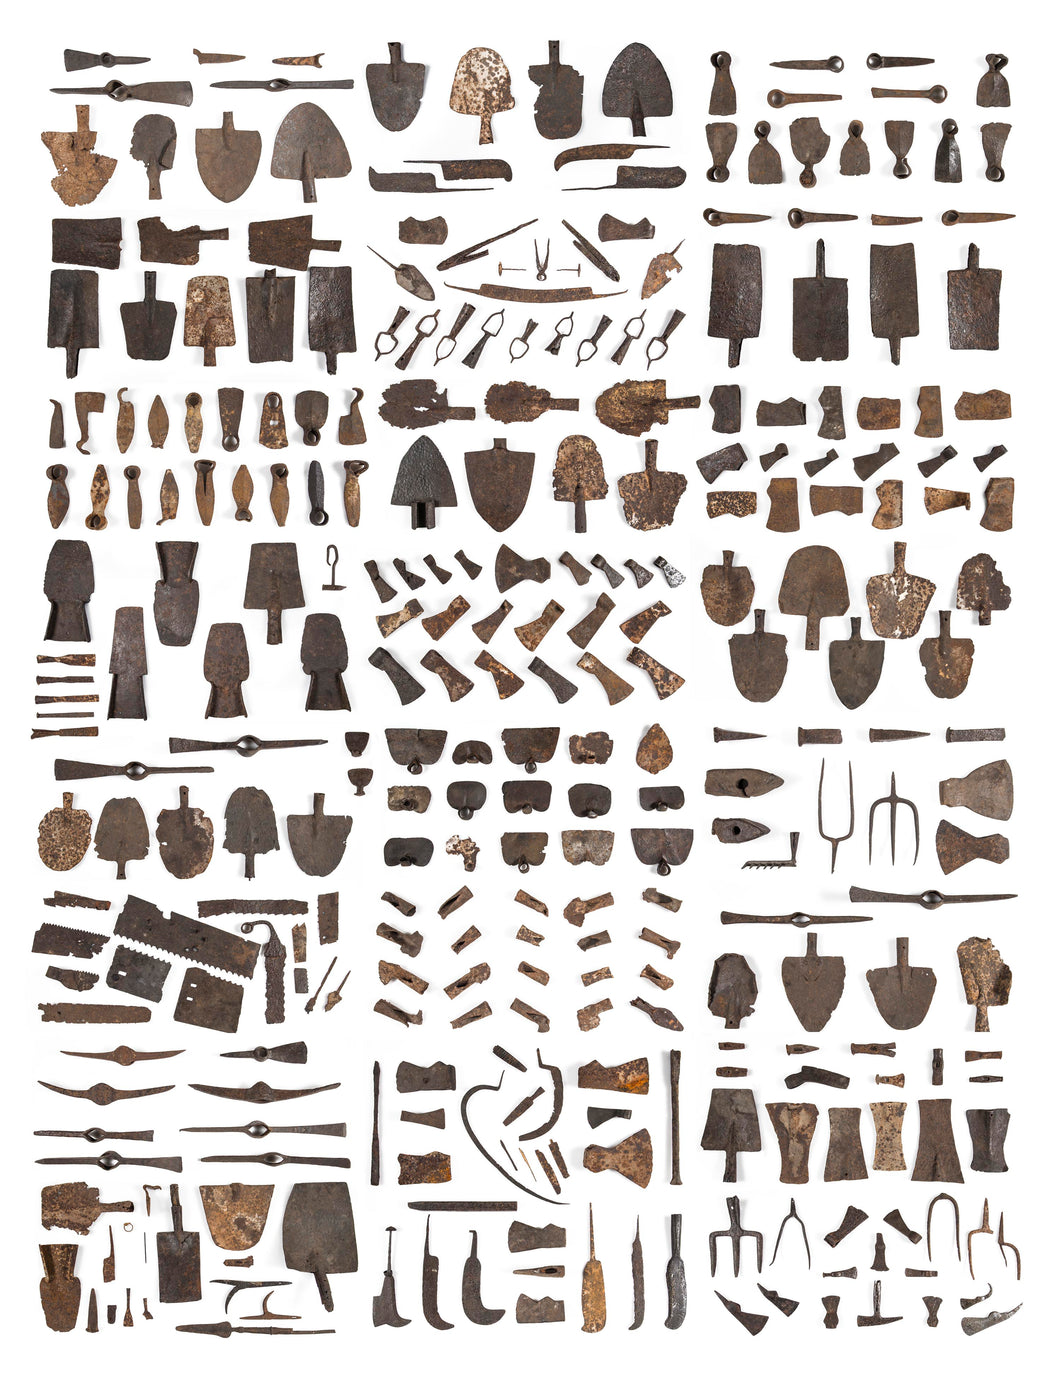 image of various tools in the collection